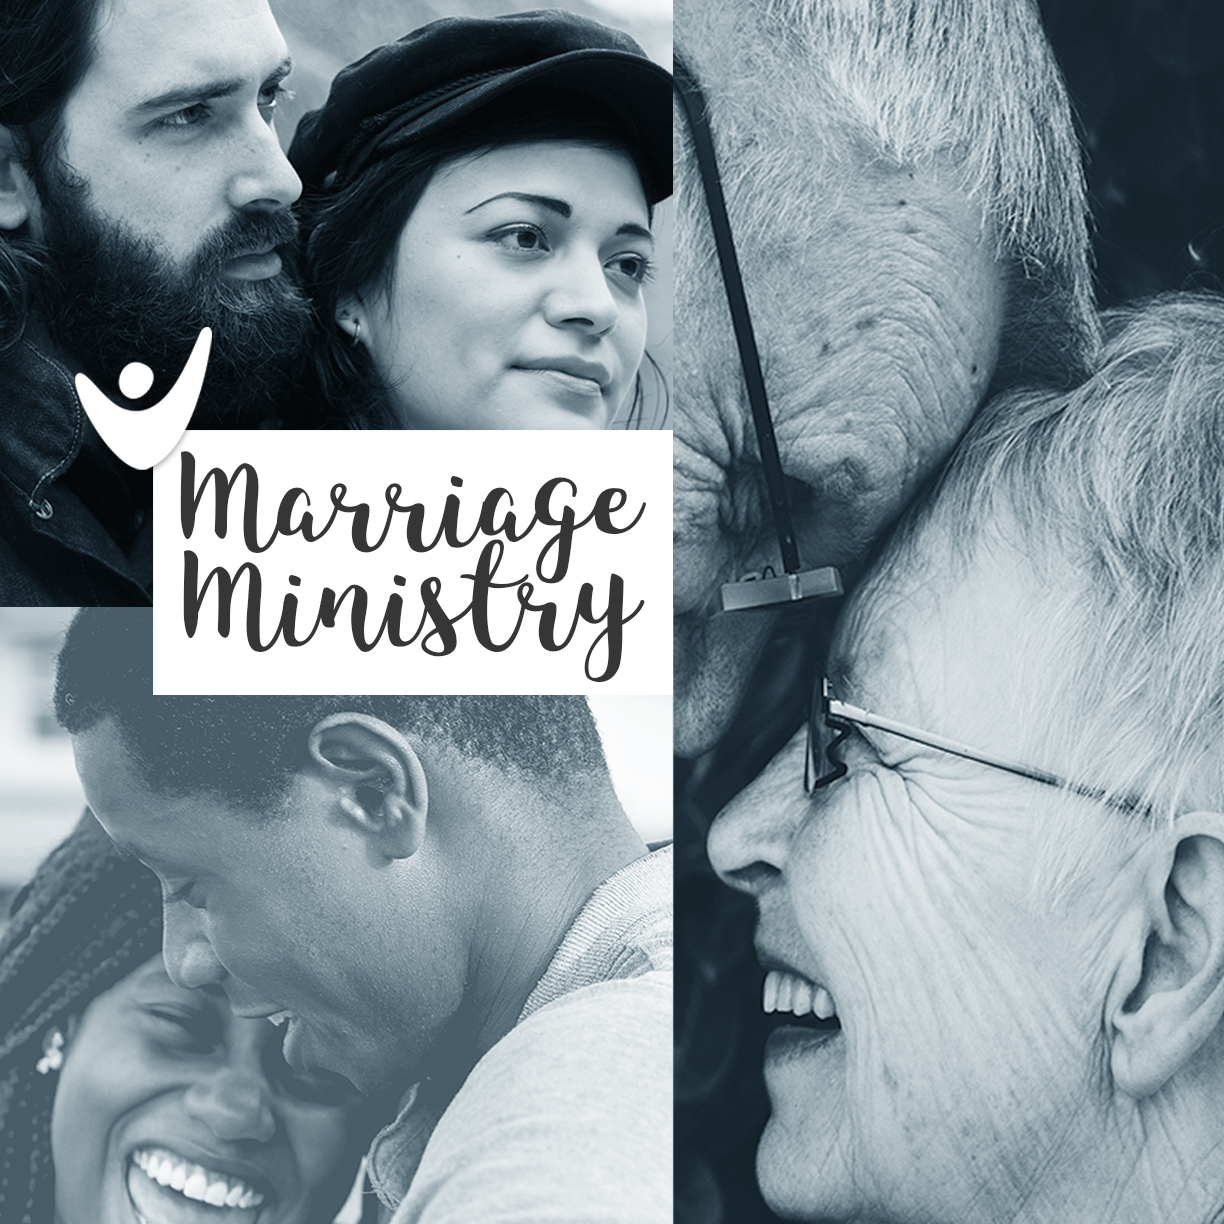 Marriage ministry art